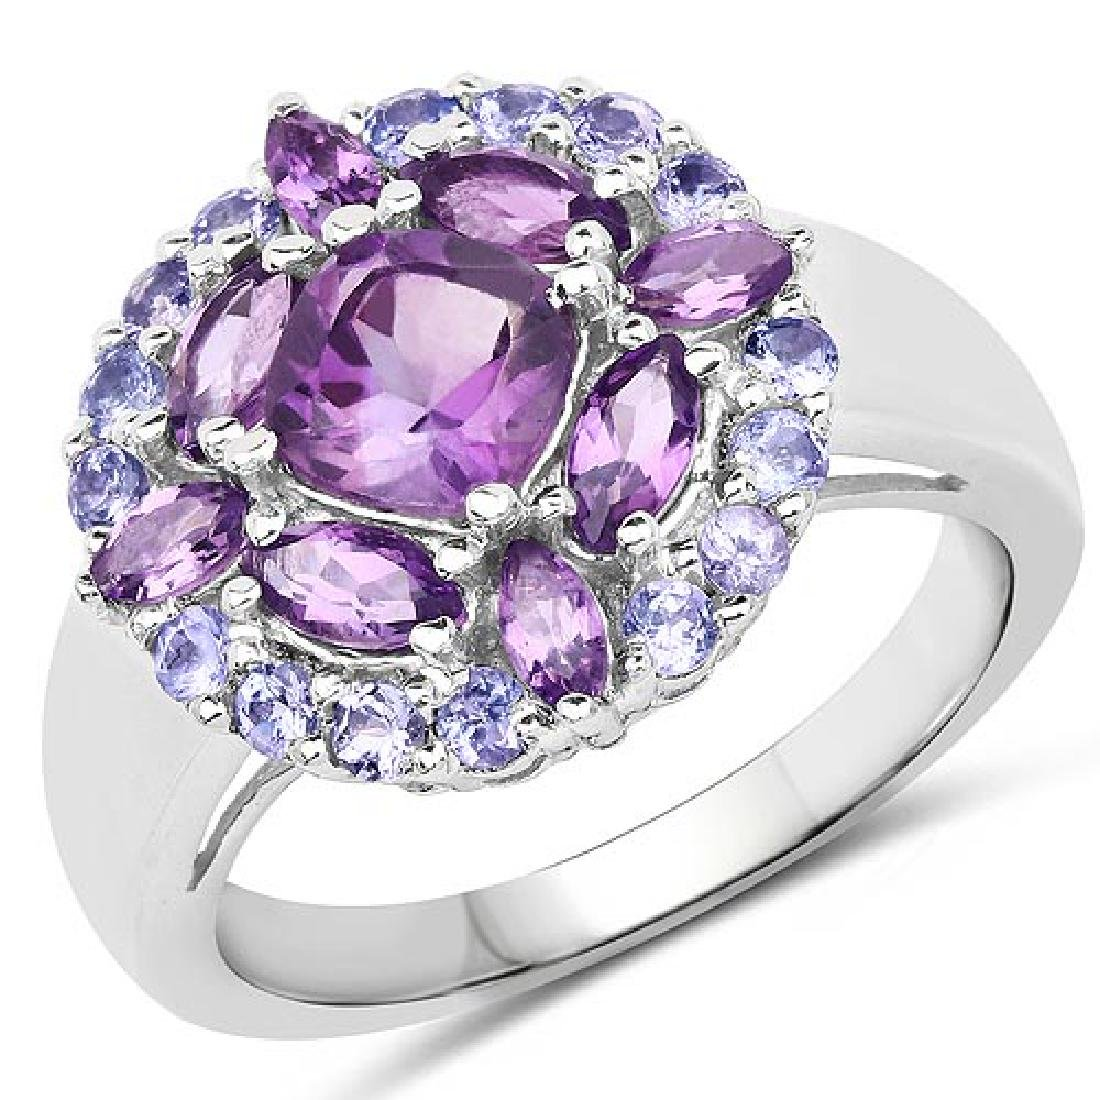 2.19 Carat Genuine Amethyst and Tanzanite .925 Sterling